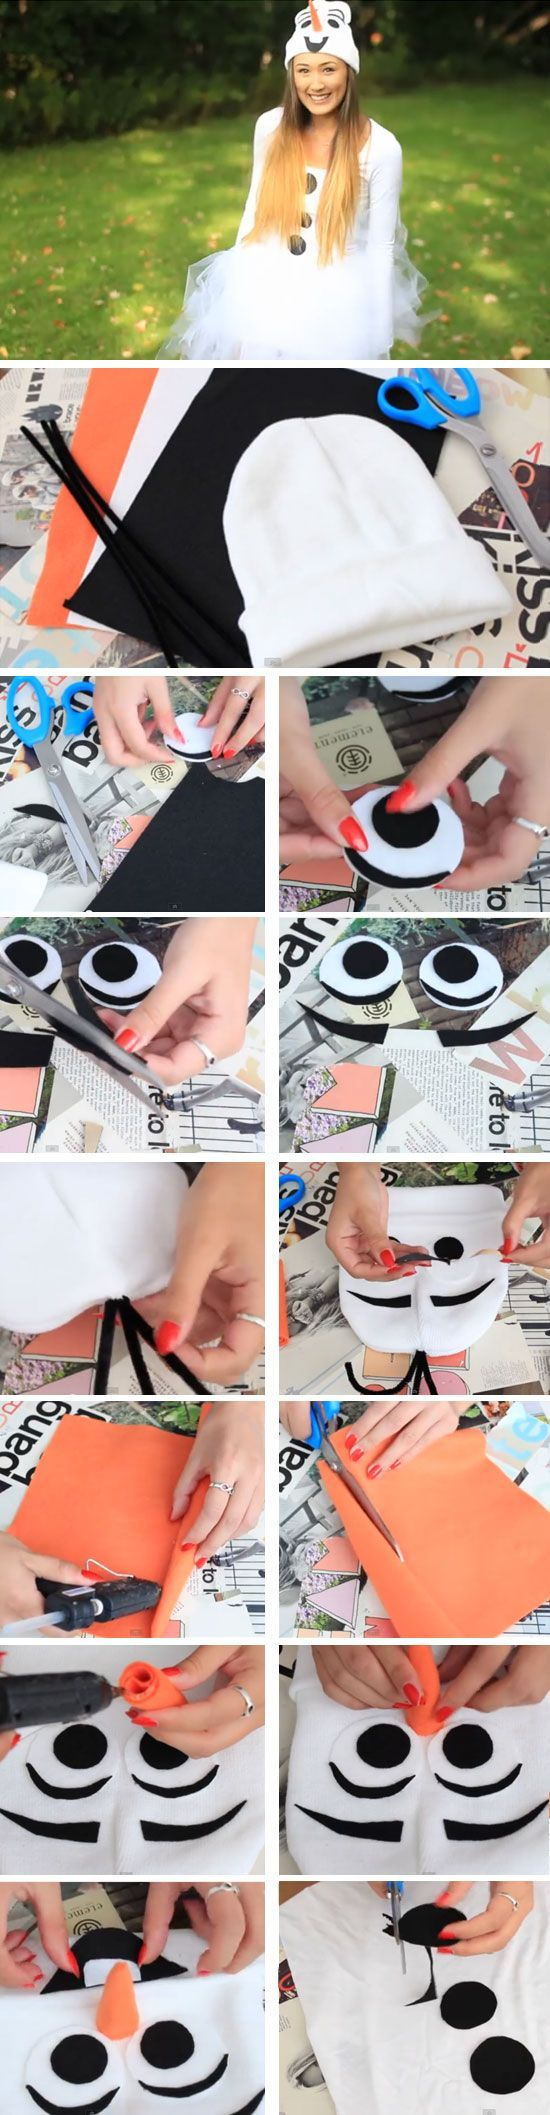 Last Minute DIY Halloween Costumes for Teens | Adorable Olaf                                                                                                                                                                                 More